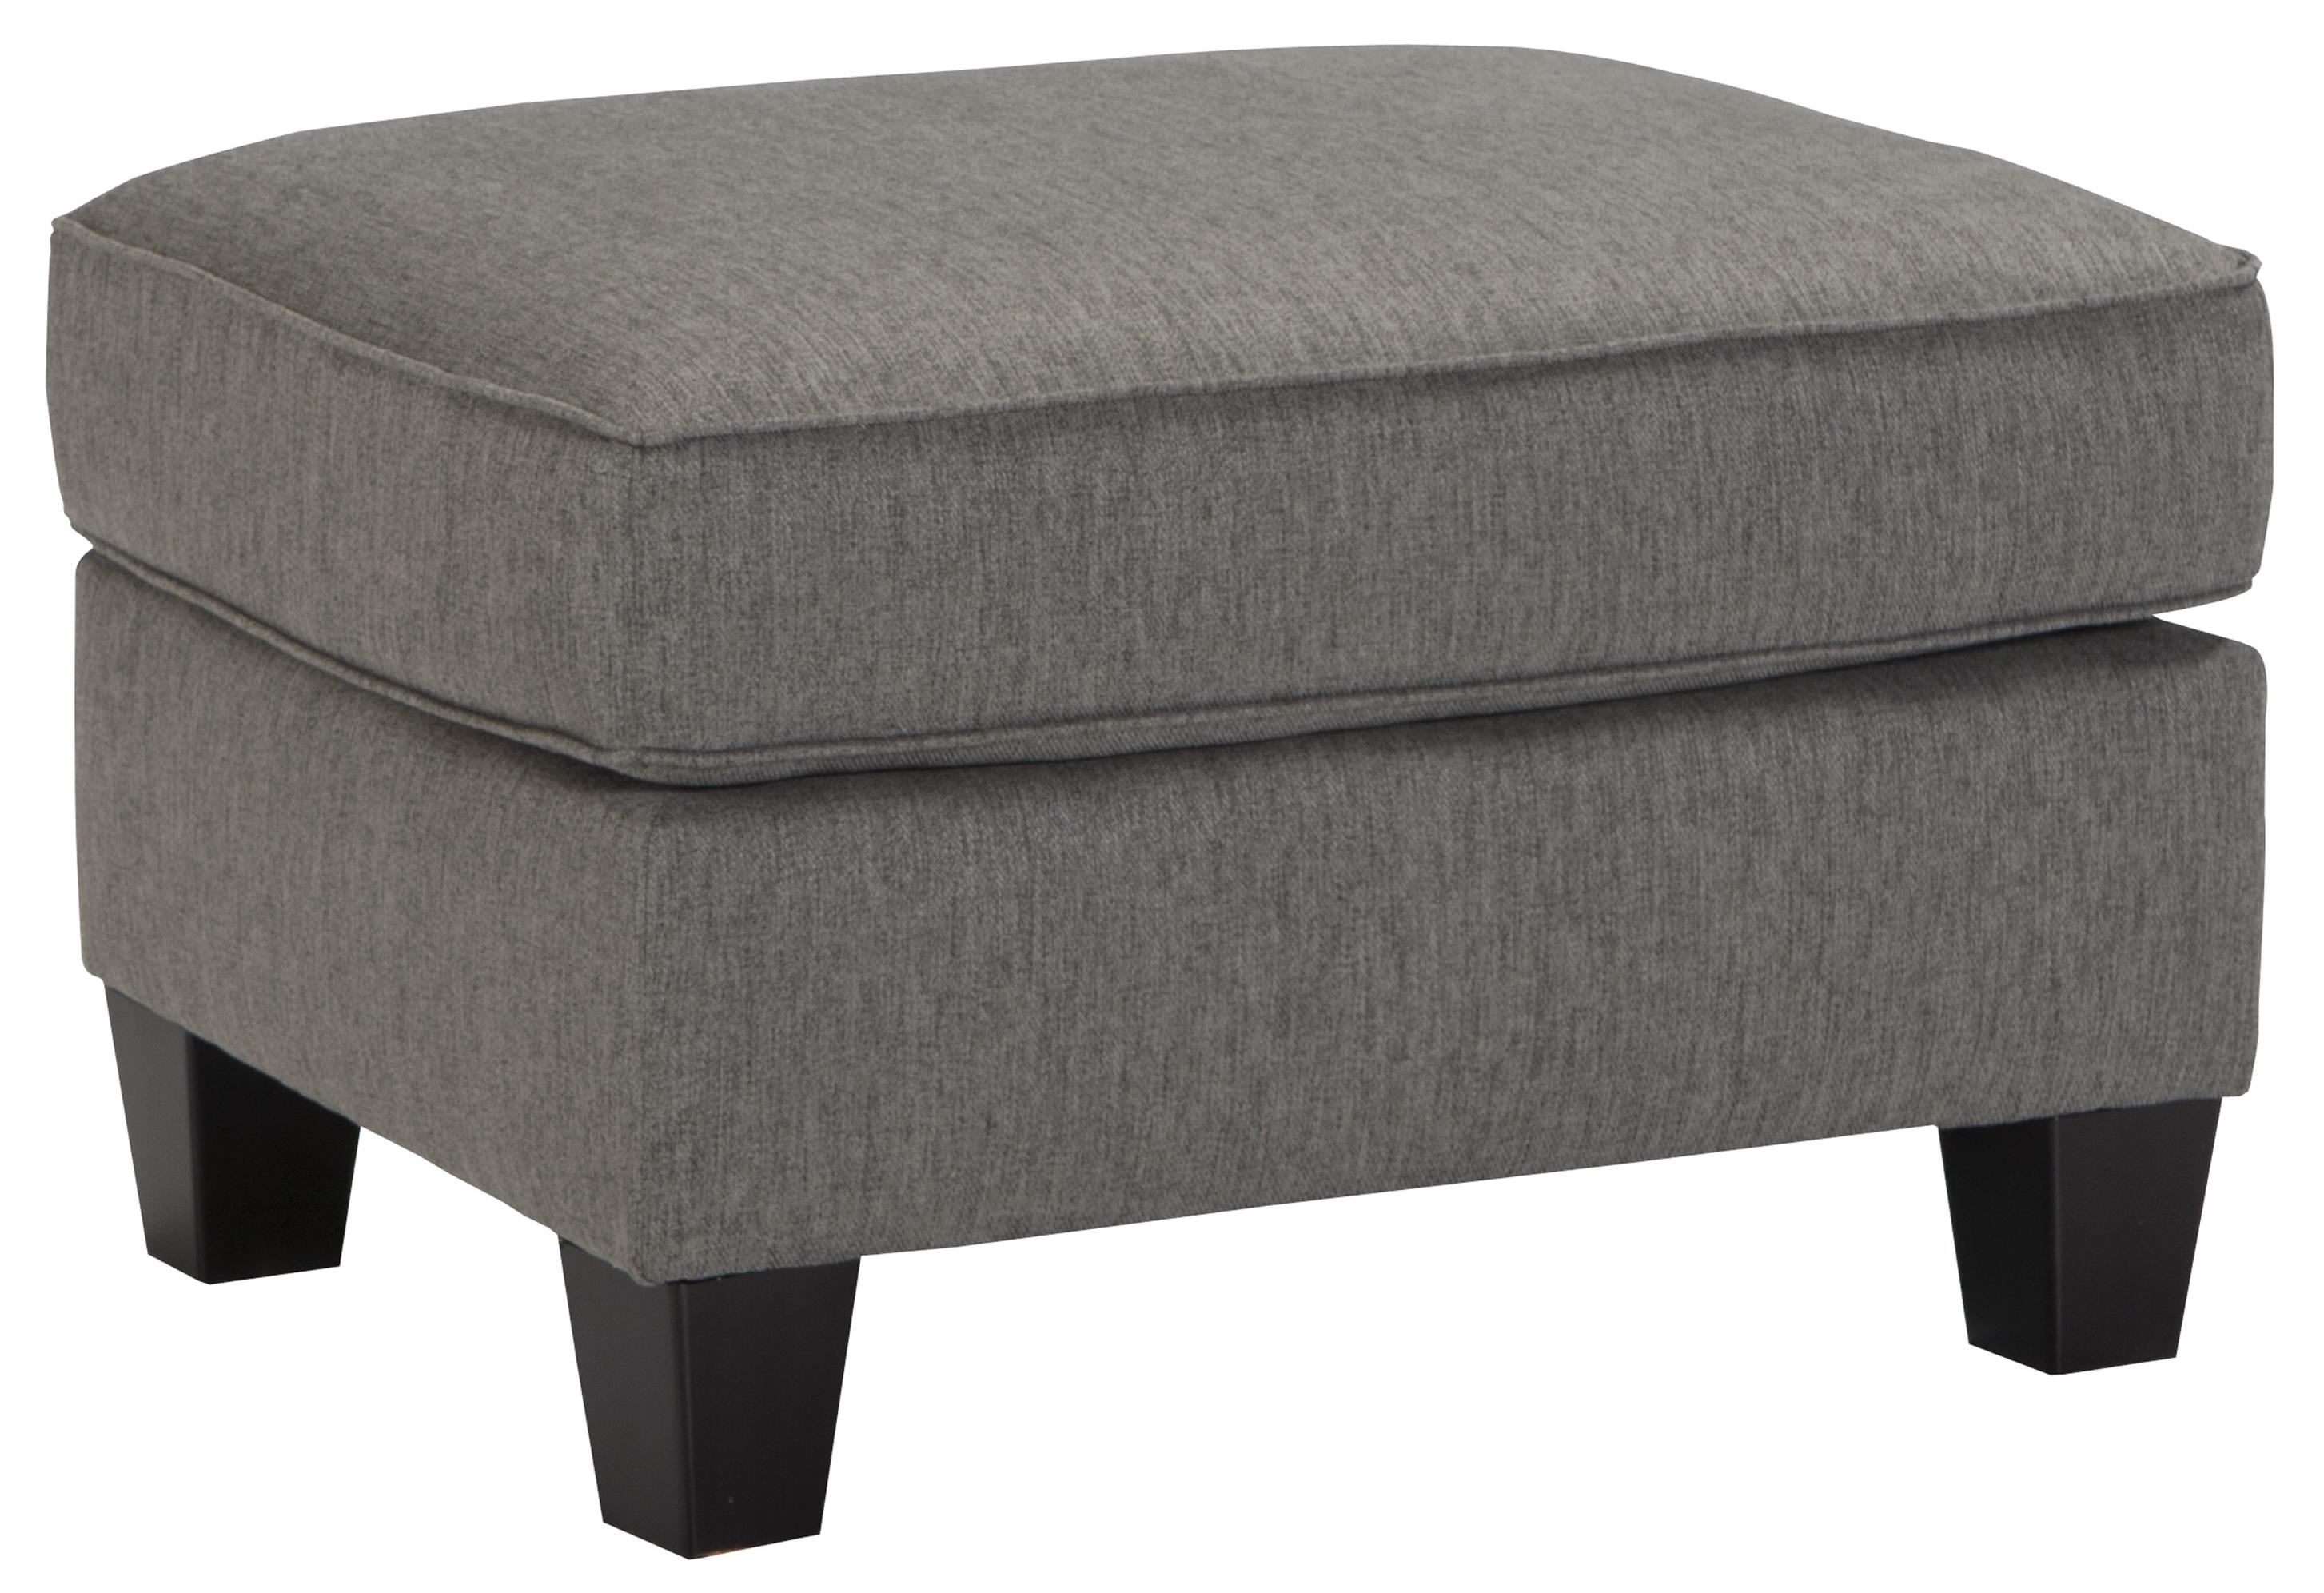 Brindon Ottoman by Benchcraft at Miller Waldrop Furniture and Decor